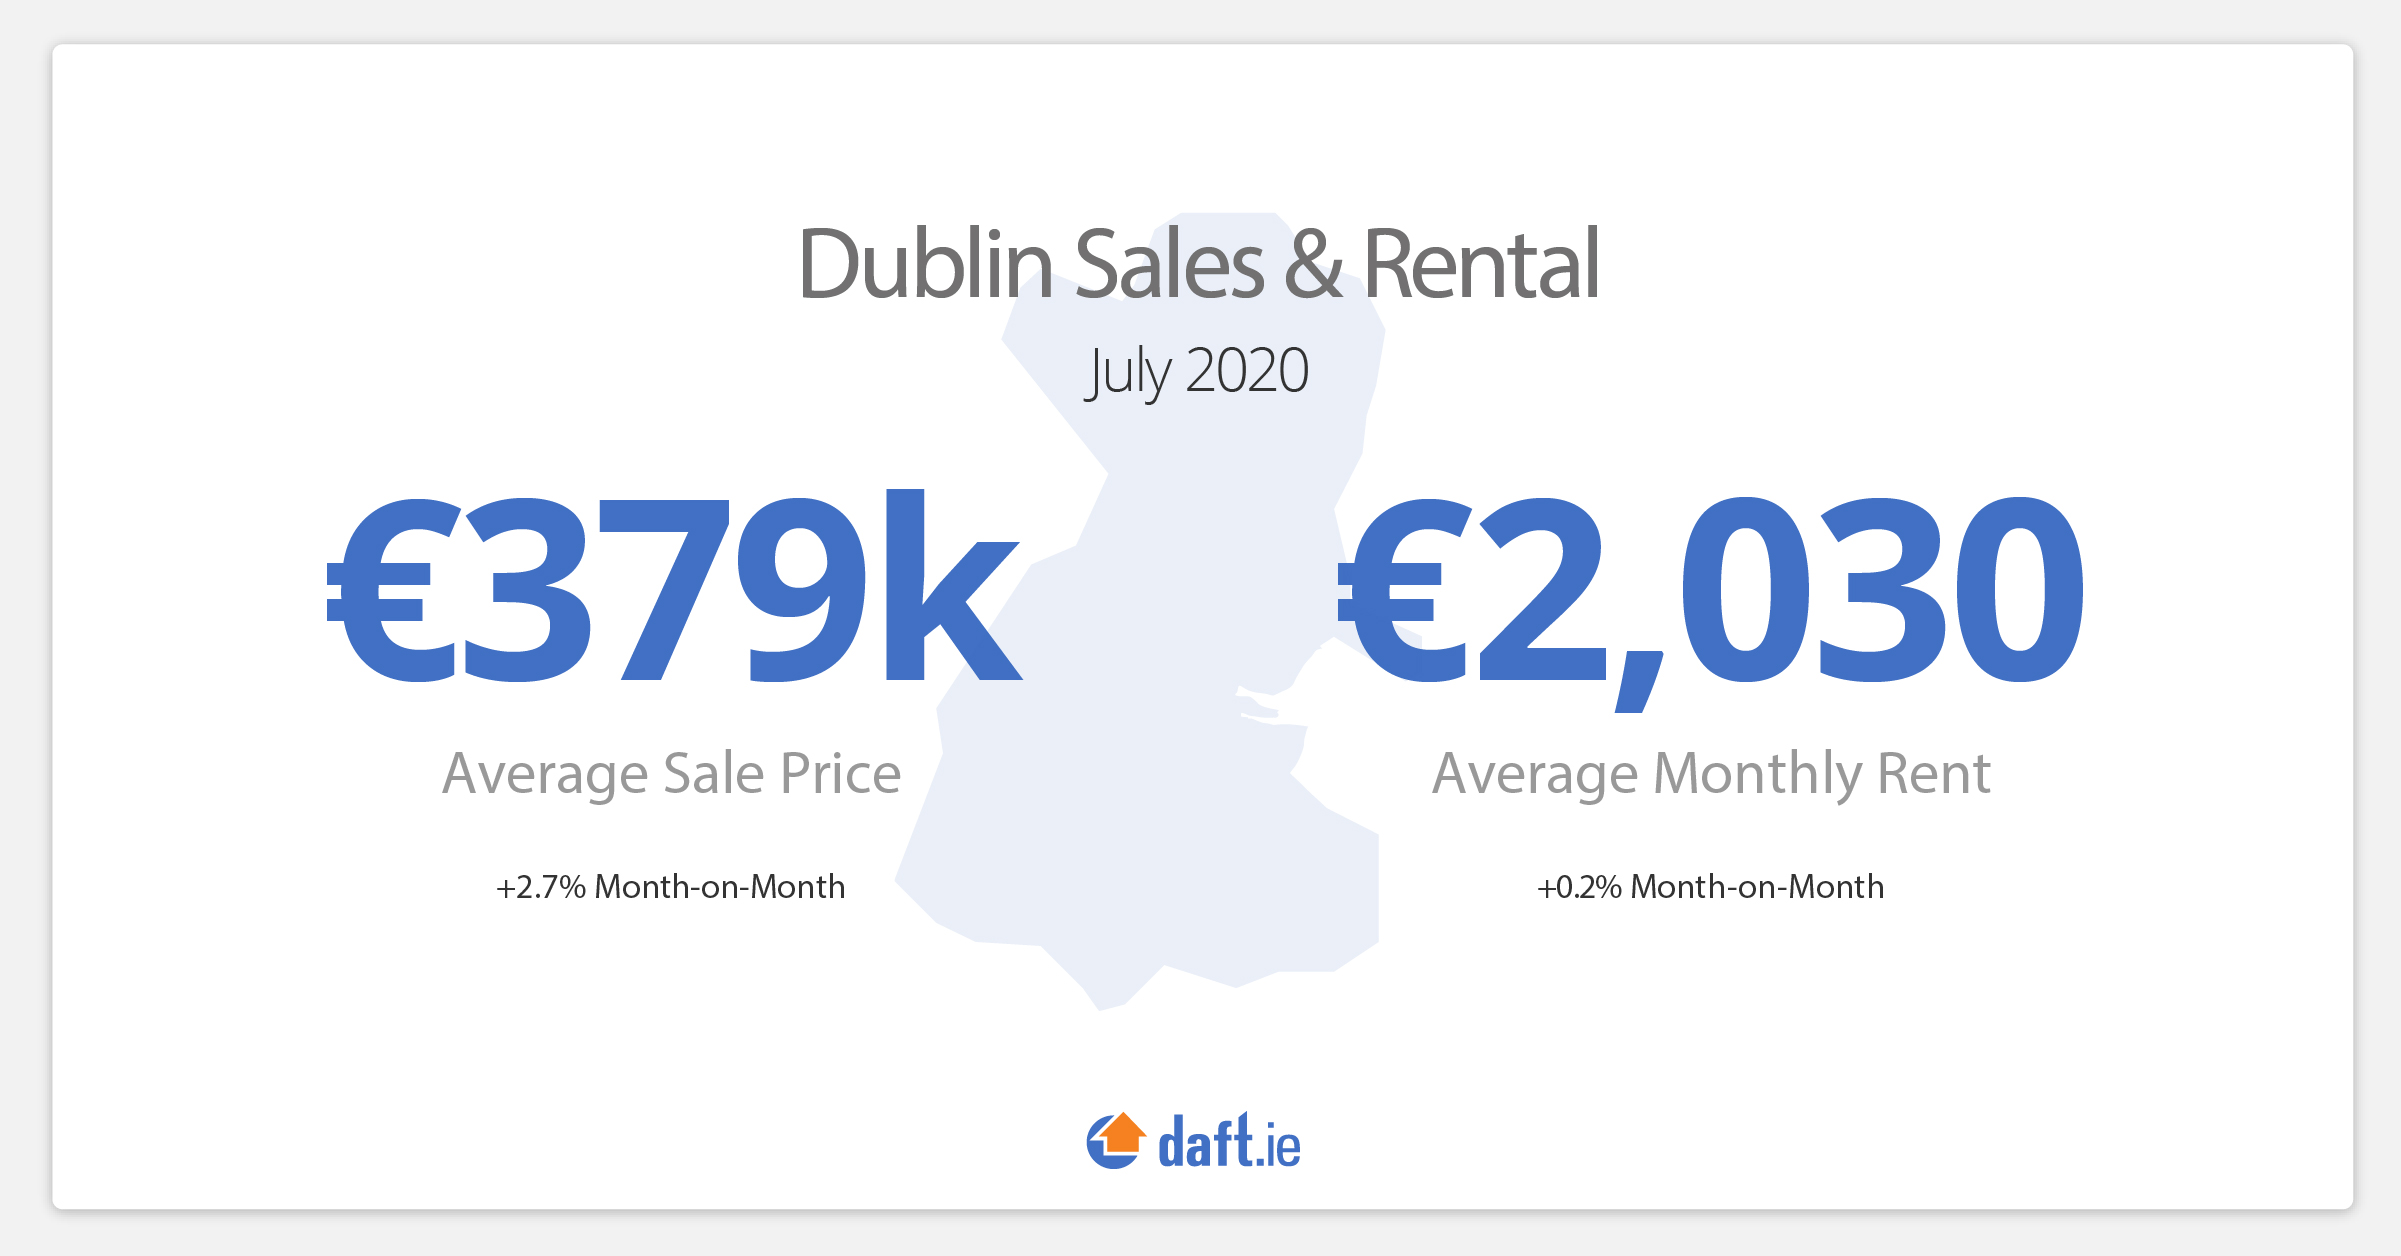 Dublin sales and rental average prices